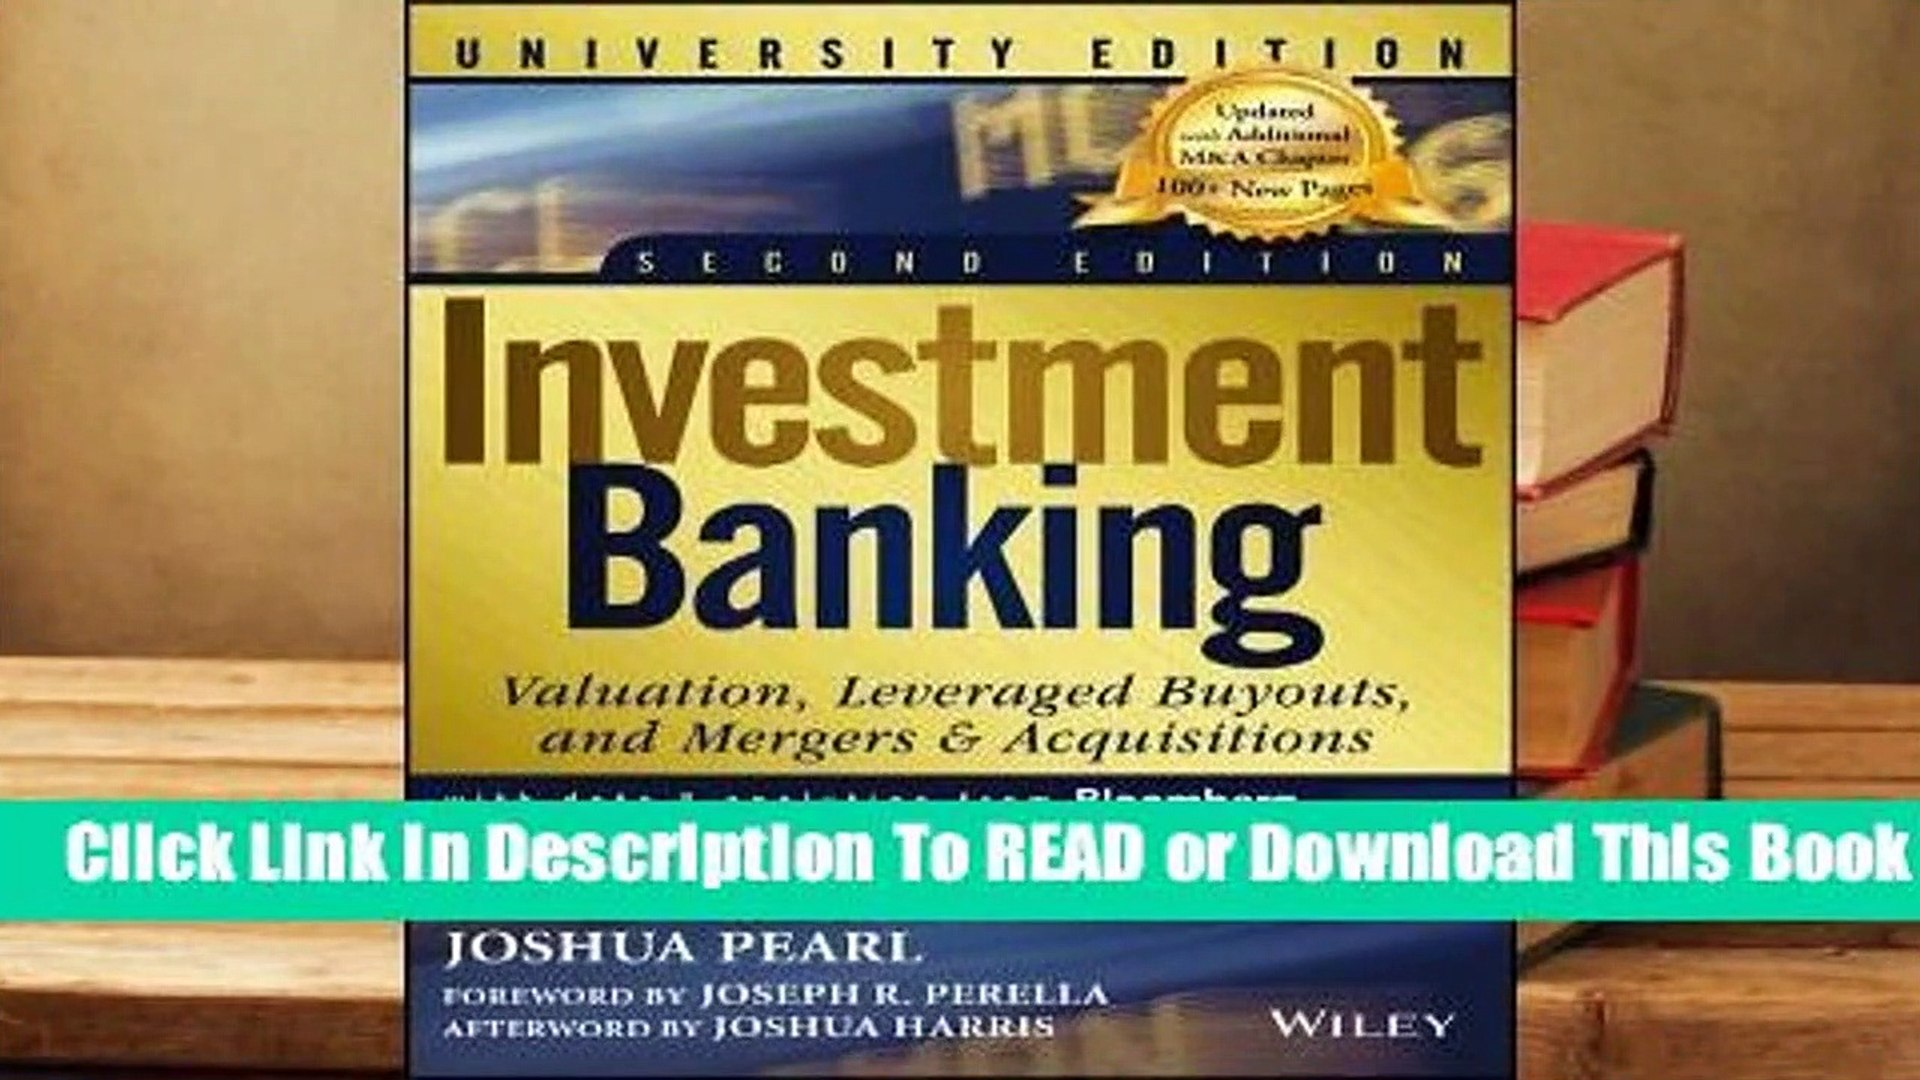 [Read] Investment Banking + Dg, 2nd Edition, University Edition  For Online